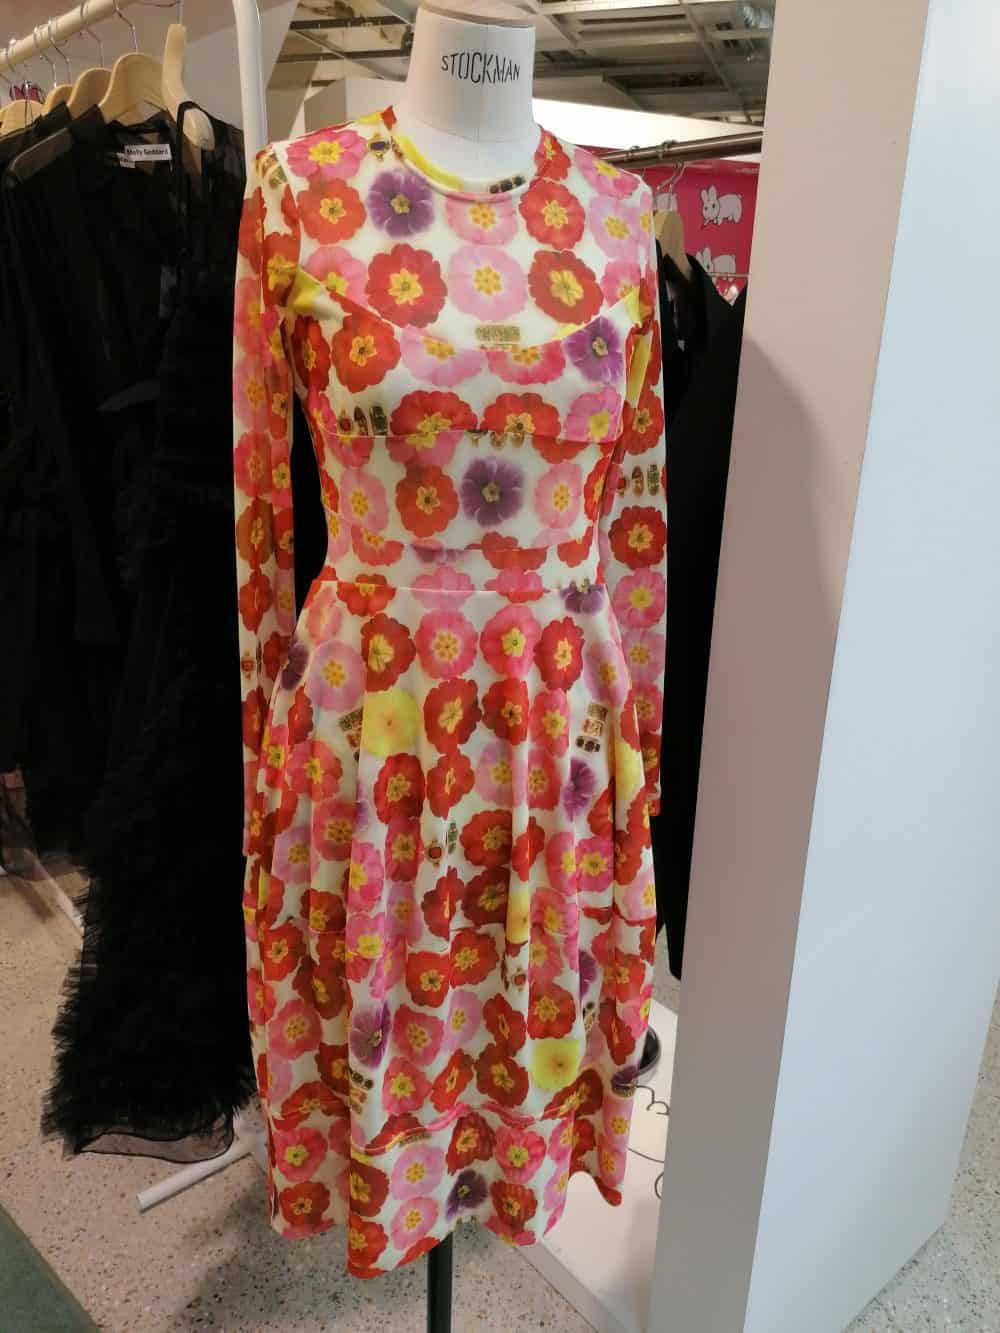 Dress by Fashion designer Molly Goddard, Dover Street Market, Latest in Design Tour, Fashion Tours London